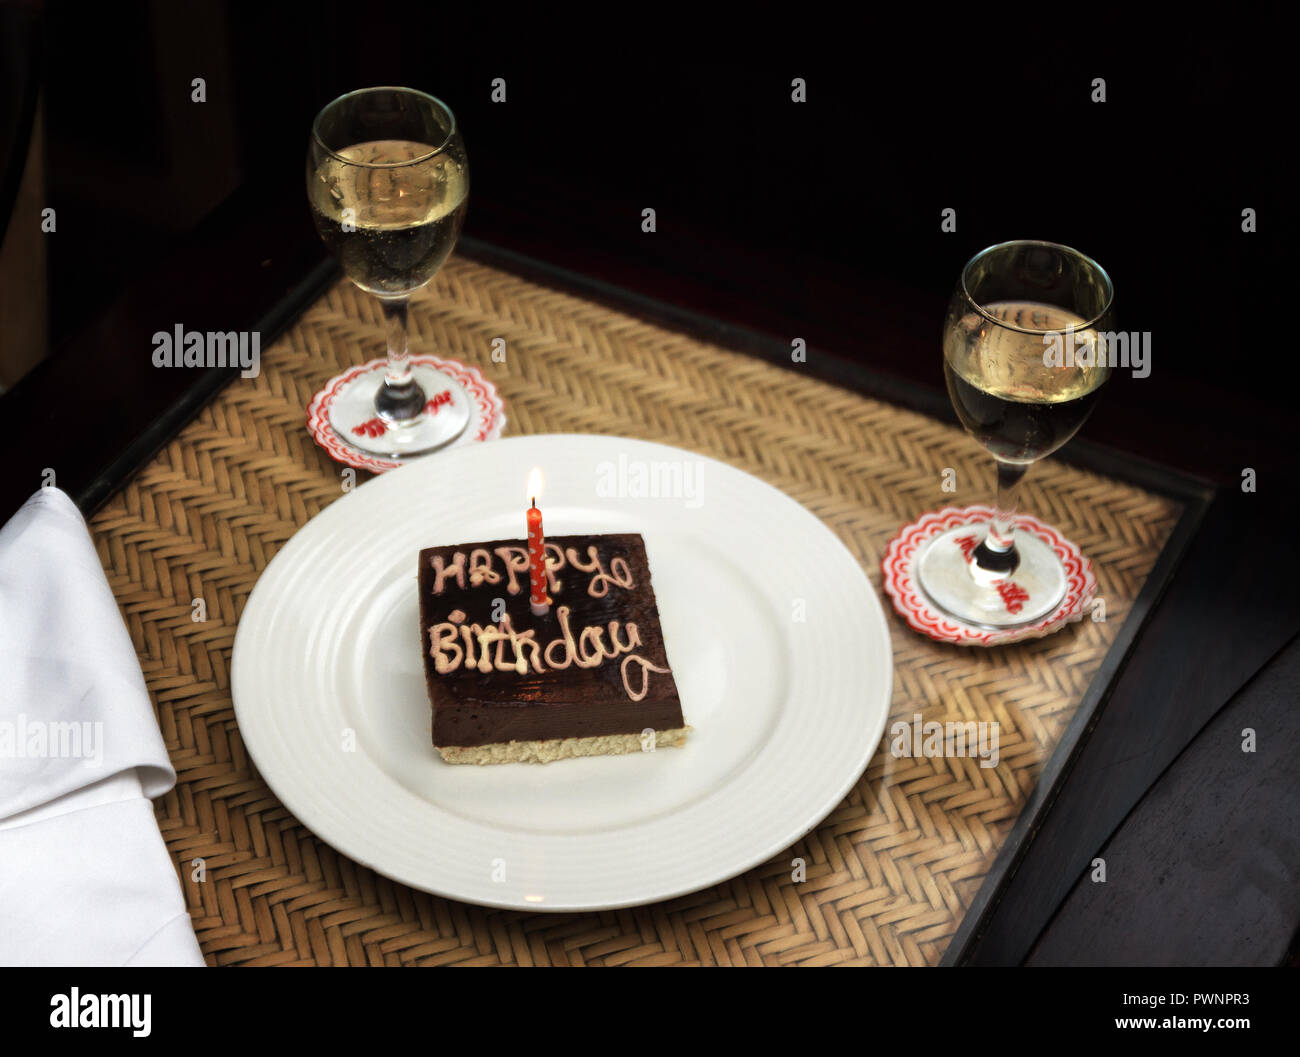 A Small Square Chocolate Birthday Cake With The Inscription Happy And One Candle On White Plate Next To Two Glasses Of Wine